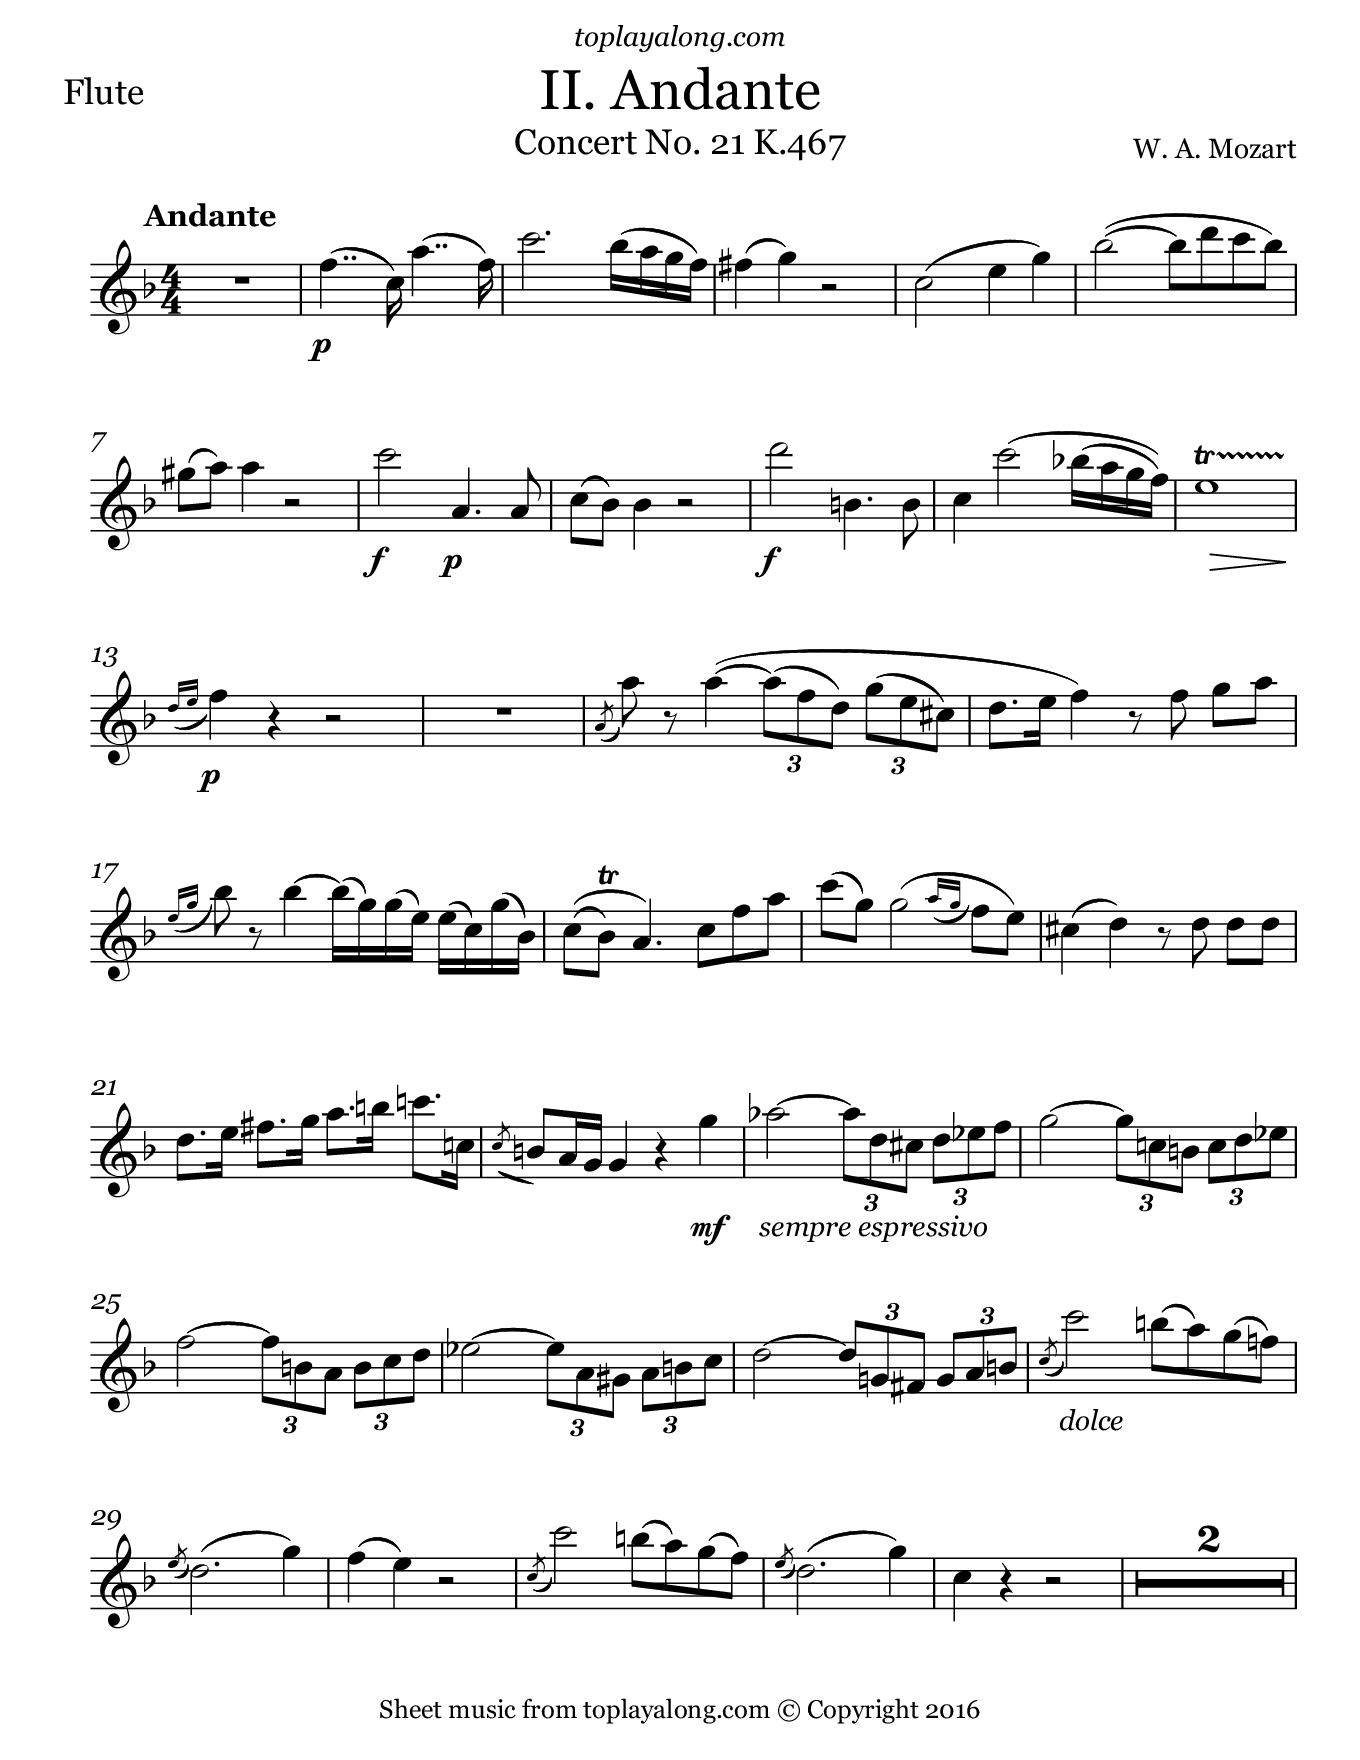 Concerto No. 21 K.467 (2nd Mvt. Theme) by Mozart. Sheet music for Flute, page 1.